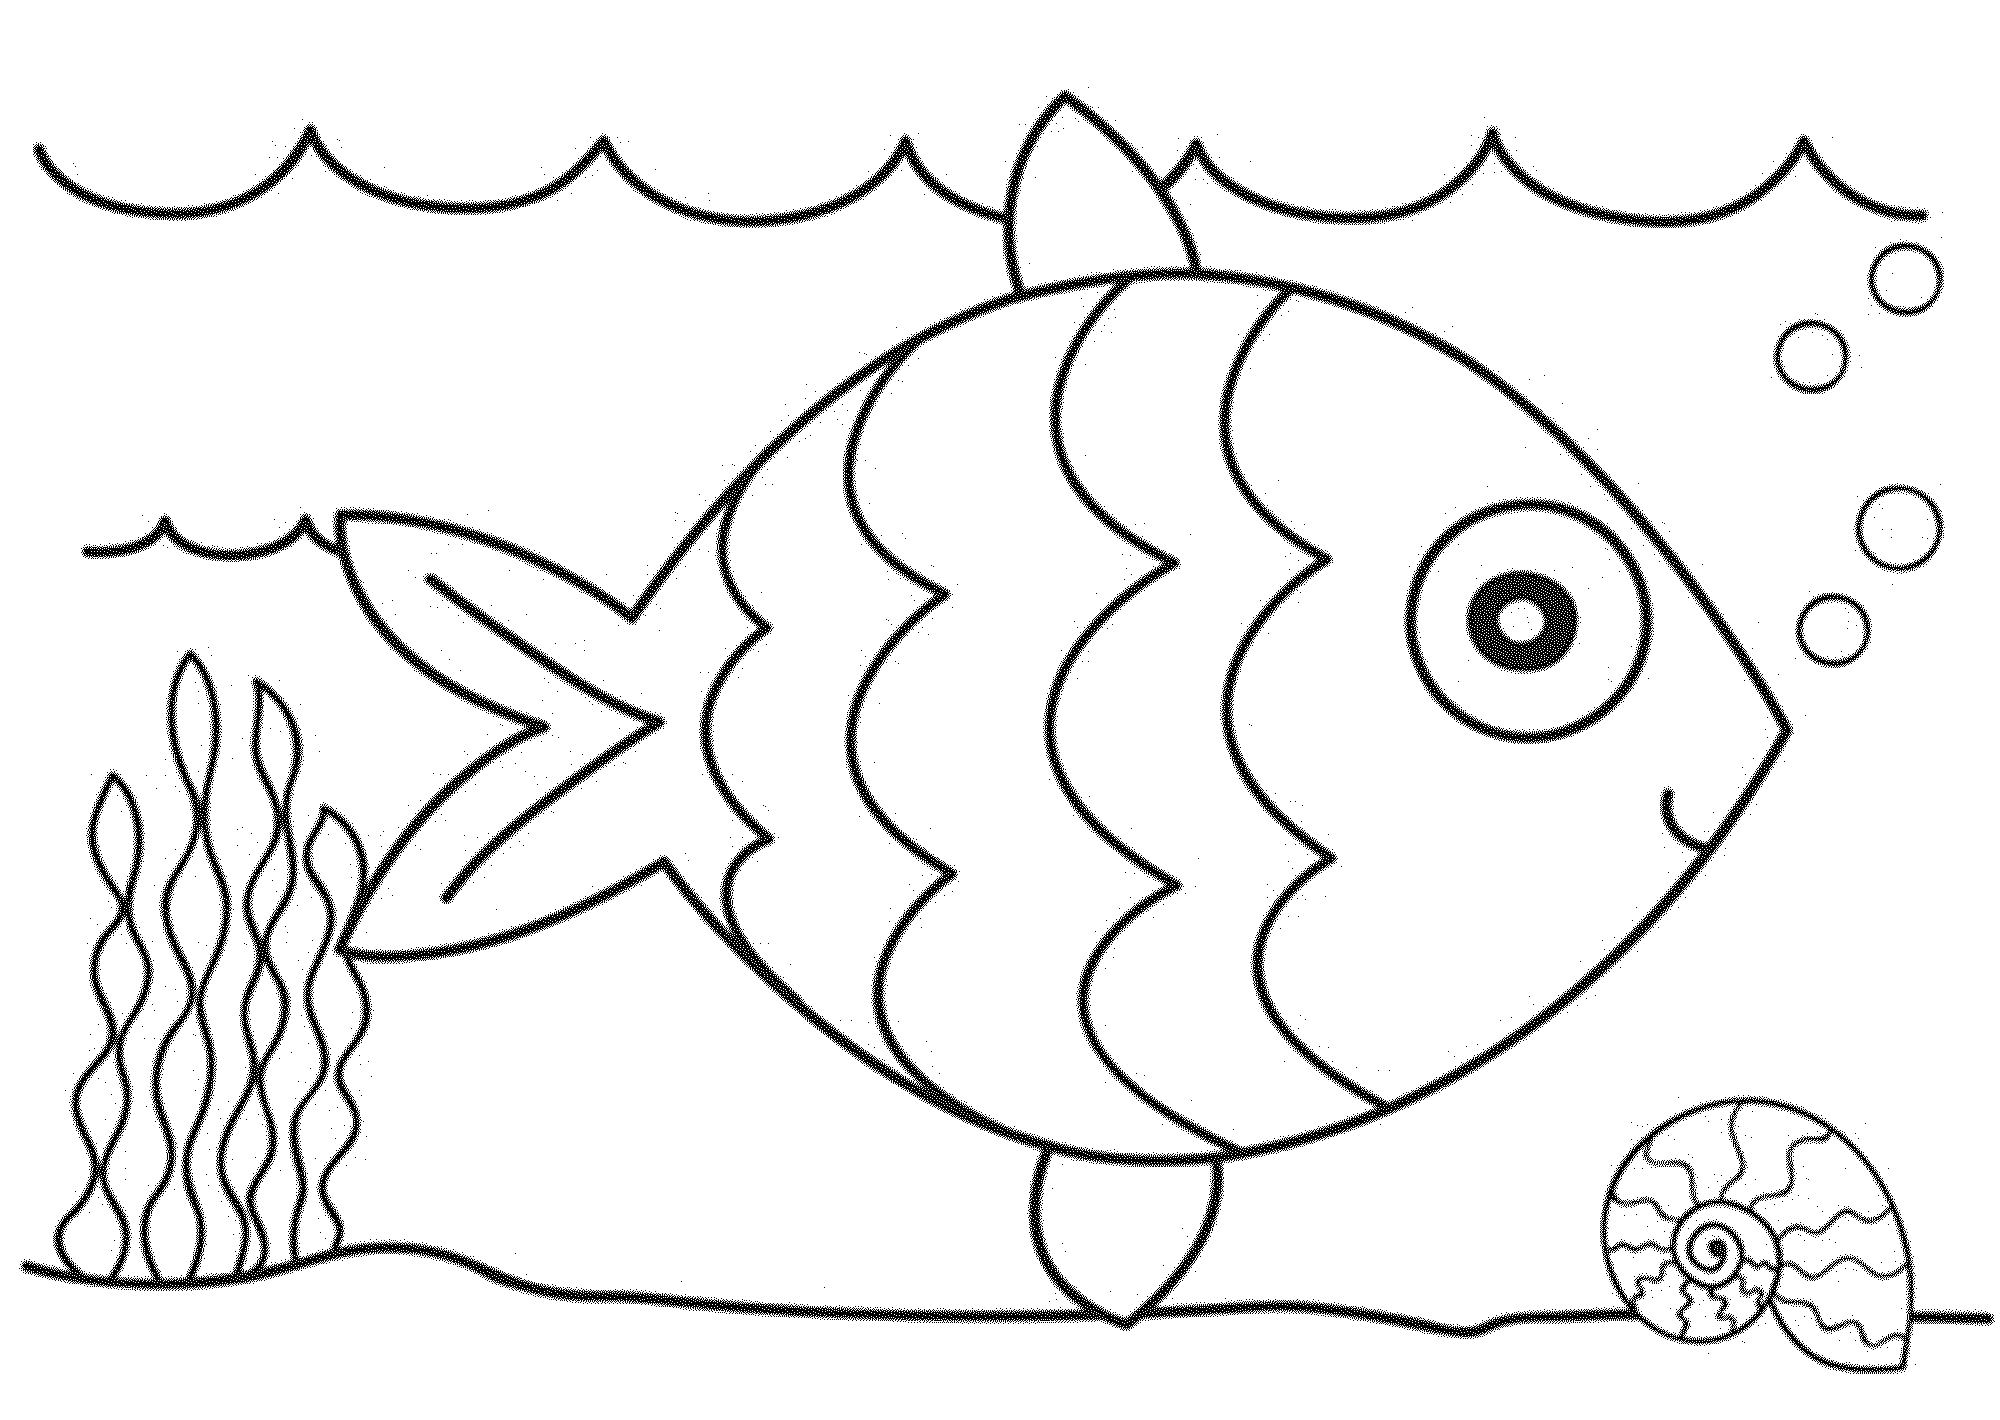 fish colouring book print download cute and educative fish coloring pages fish book colouring